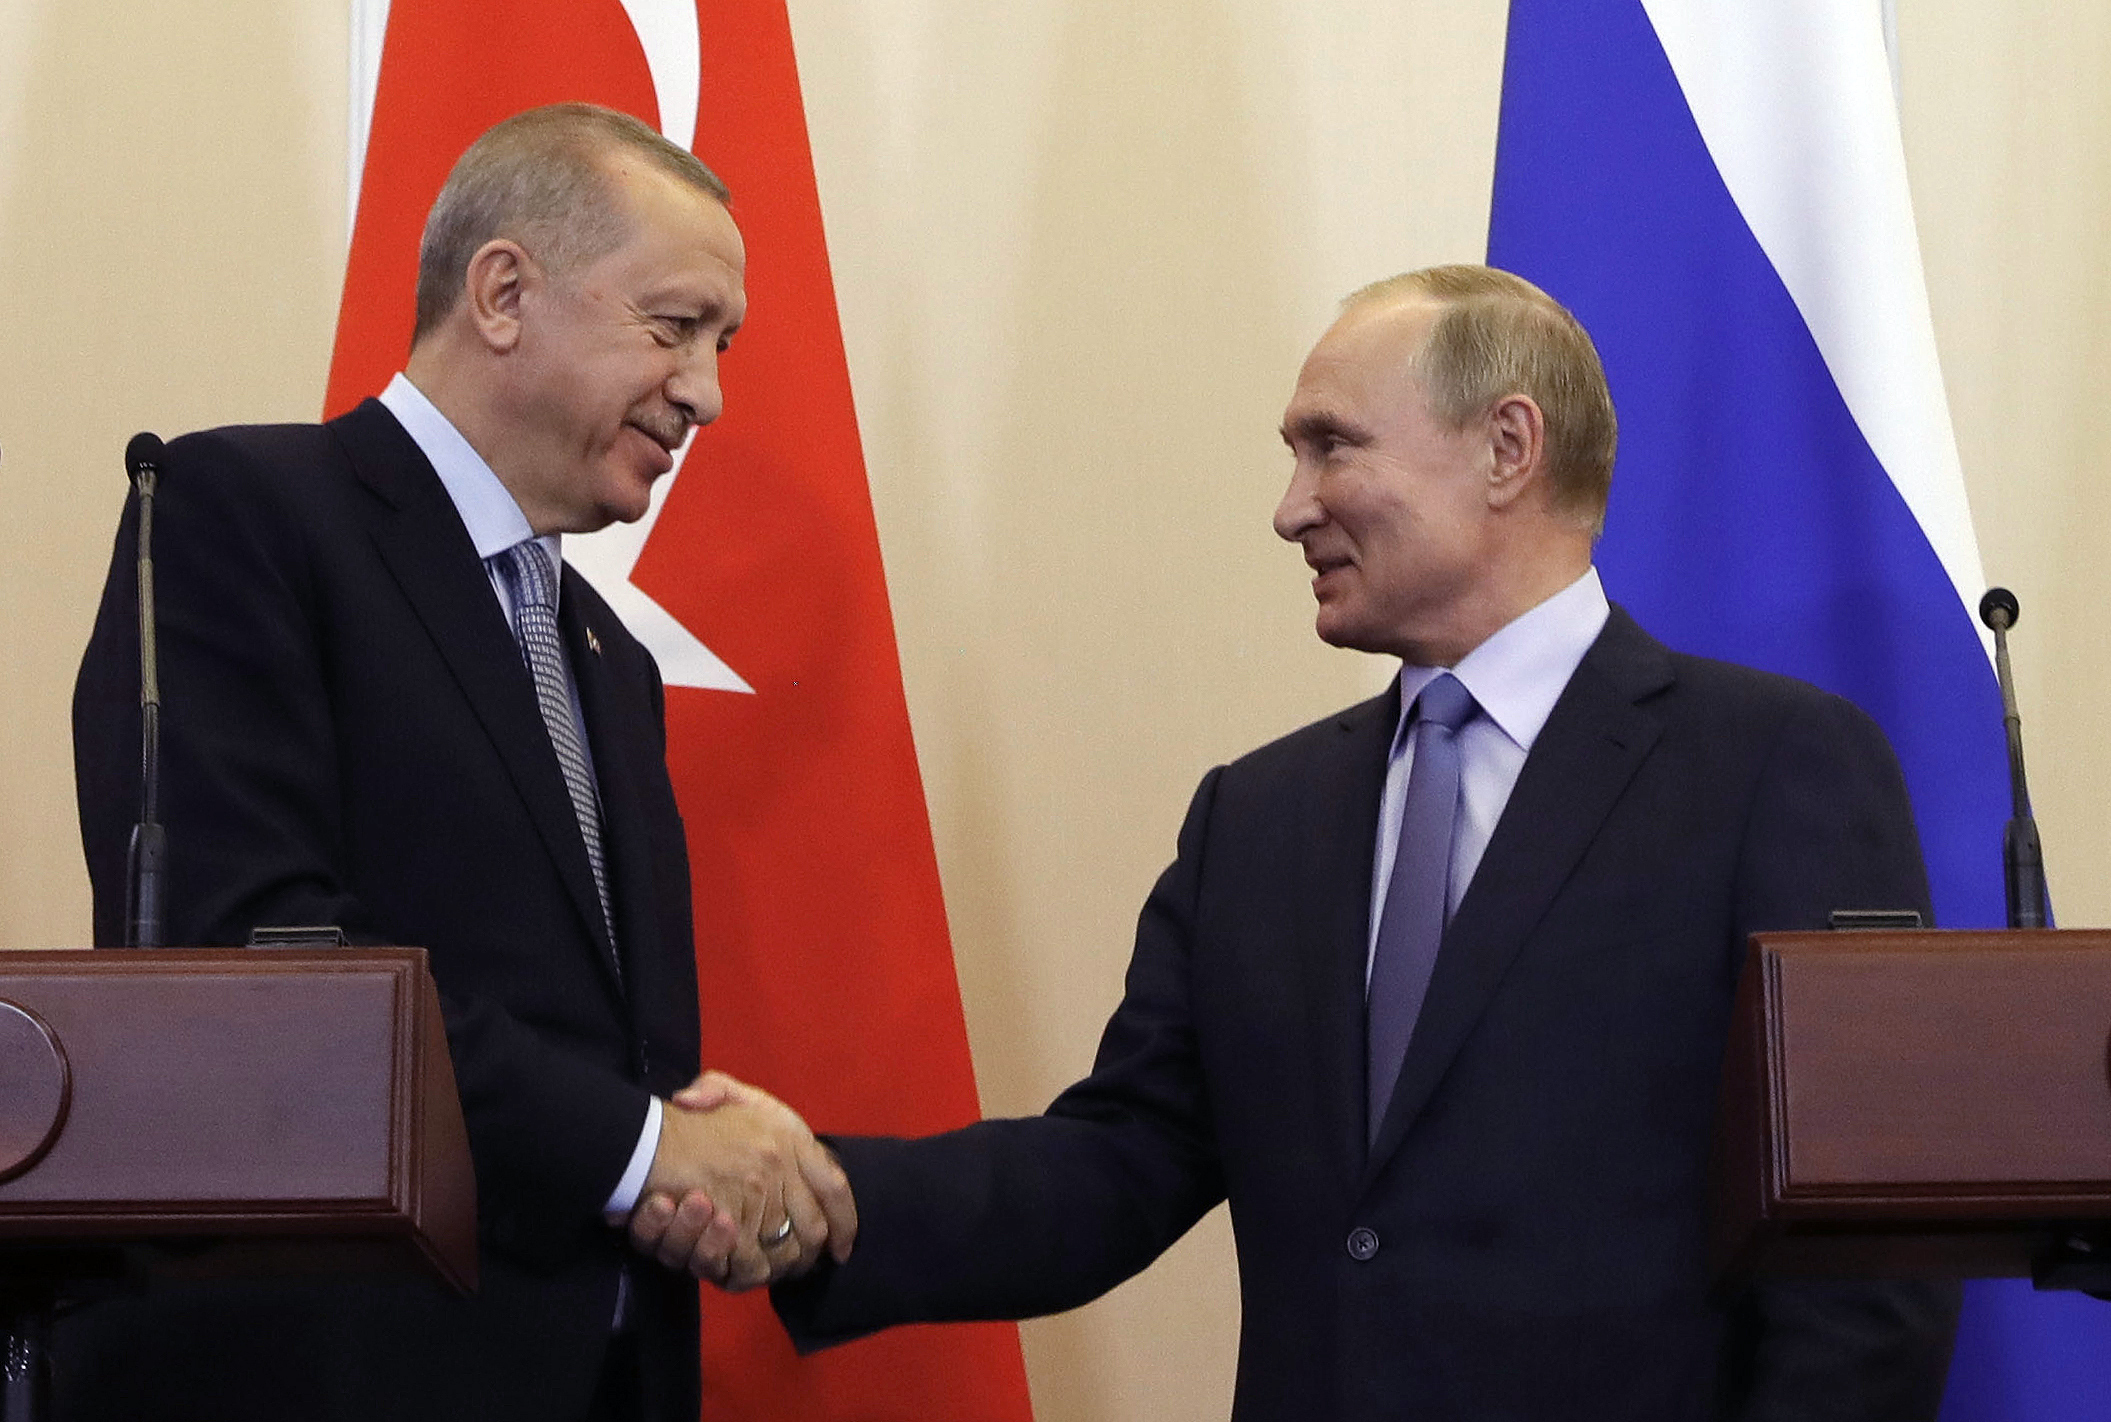 Turkey's President Erdogan and Russia's President Putin cement their alliance in Syria, one more step that threatens the goals of the U.S. and its allies and underscores the wisdom of expelling Turkey from NATO.